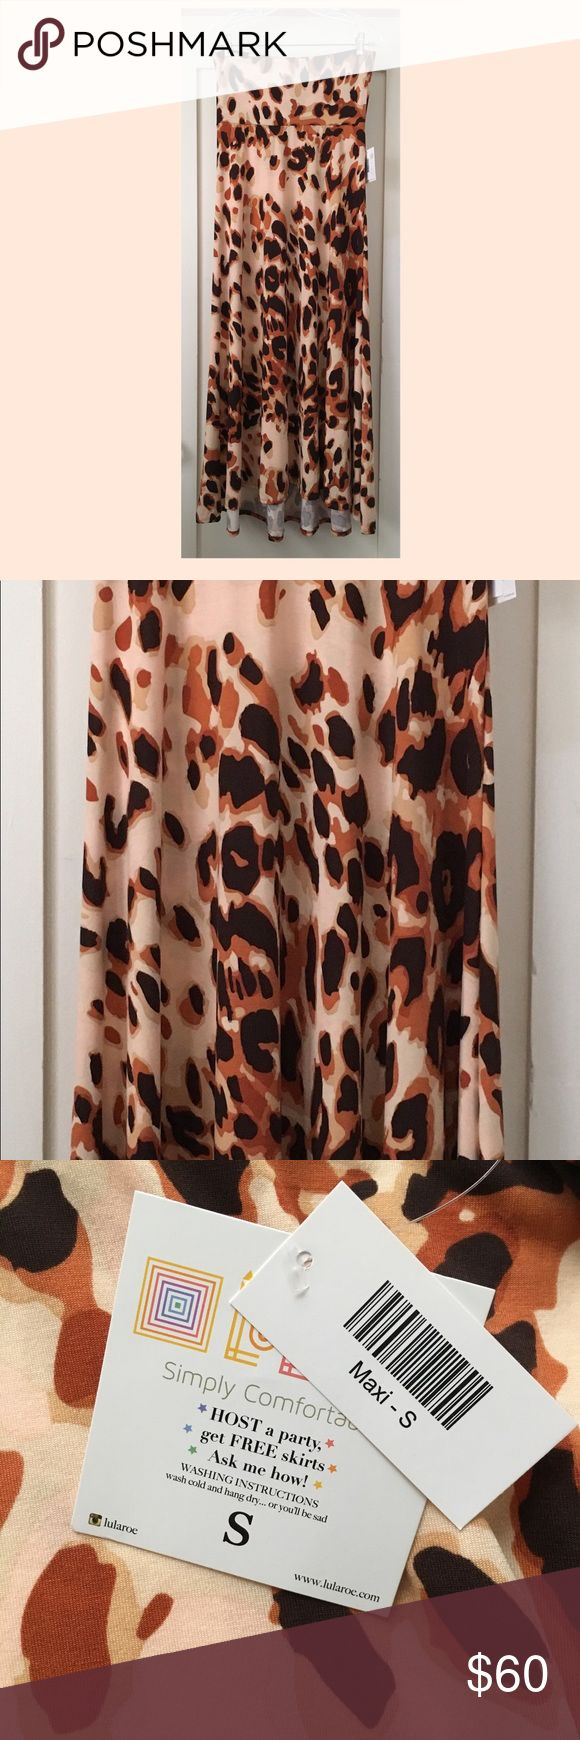 LuLaRoe Animal Print Maxi Skirt New with tags. Beautiful LuLaRoe animal print (cheetah / leopard) maxi skirt which can also be worn as a dress. Size Small (S) but this style runs large (see size chart.). Non slinky material. LuLaRoe Skirts Maxi